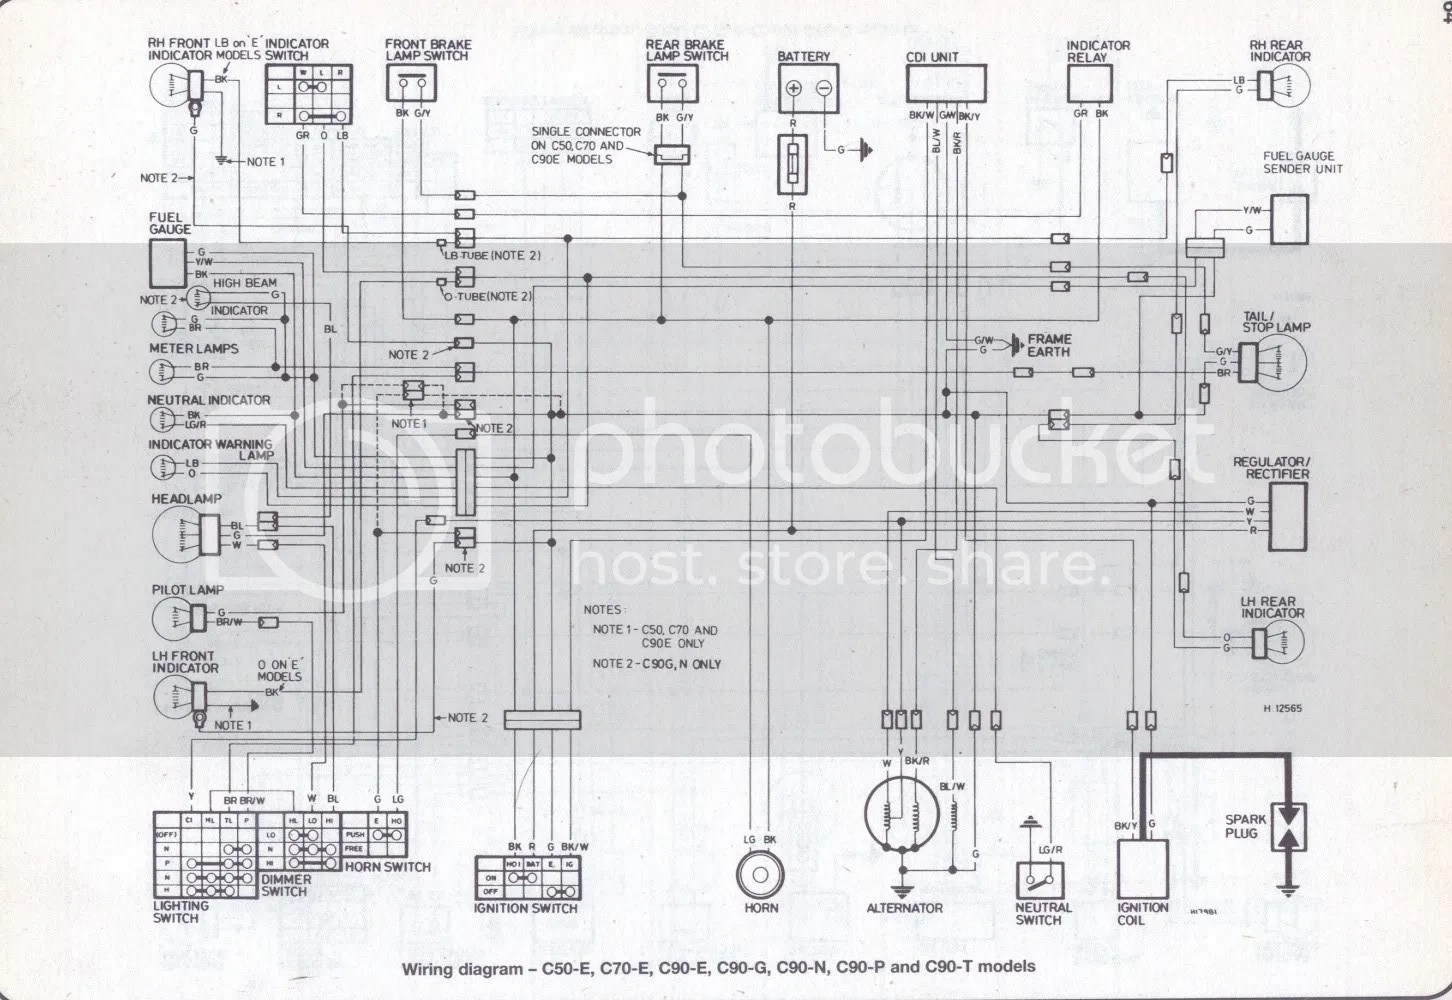 1980 honda cb400t wiring diagram kenmore clothes dryer best library